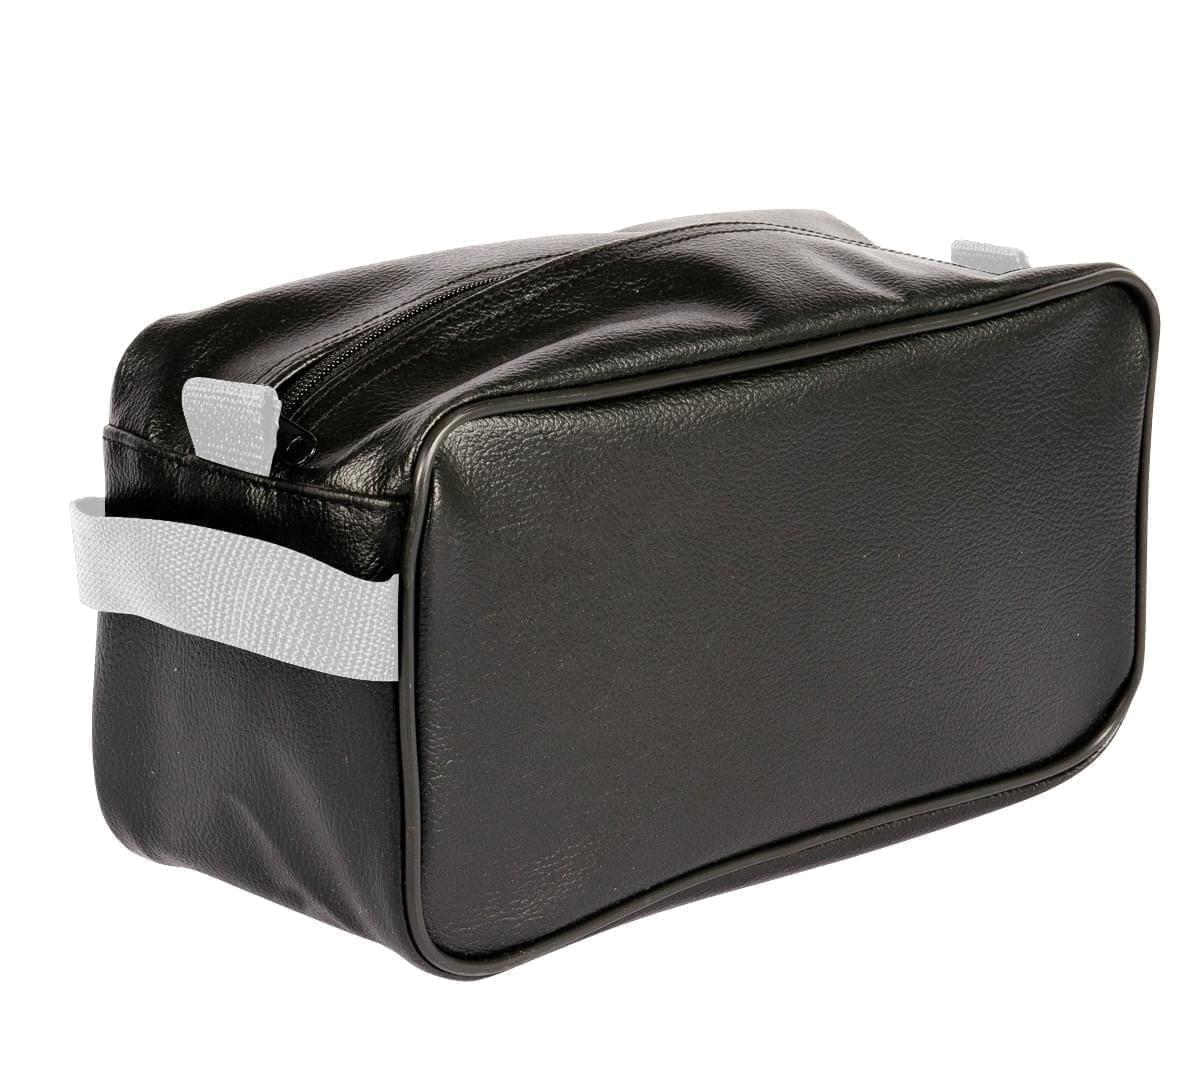 USA Made Cosmetic & Toiletry Cases, Black-White, 3000996-AO4